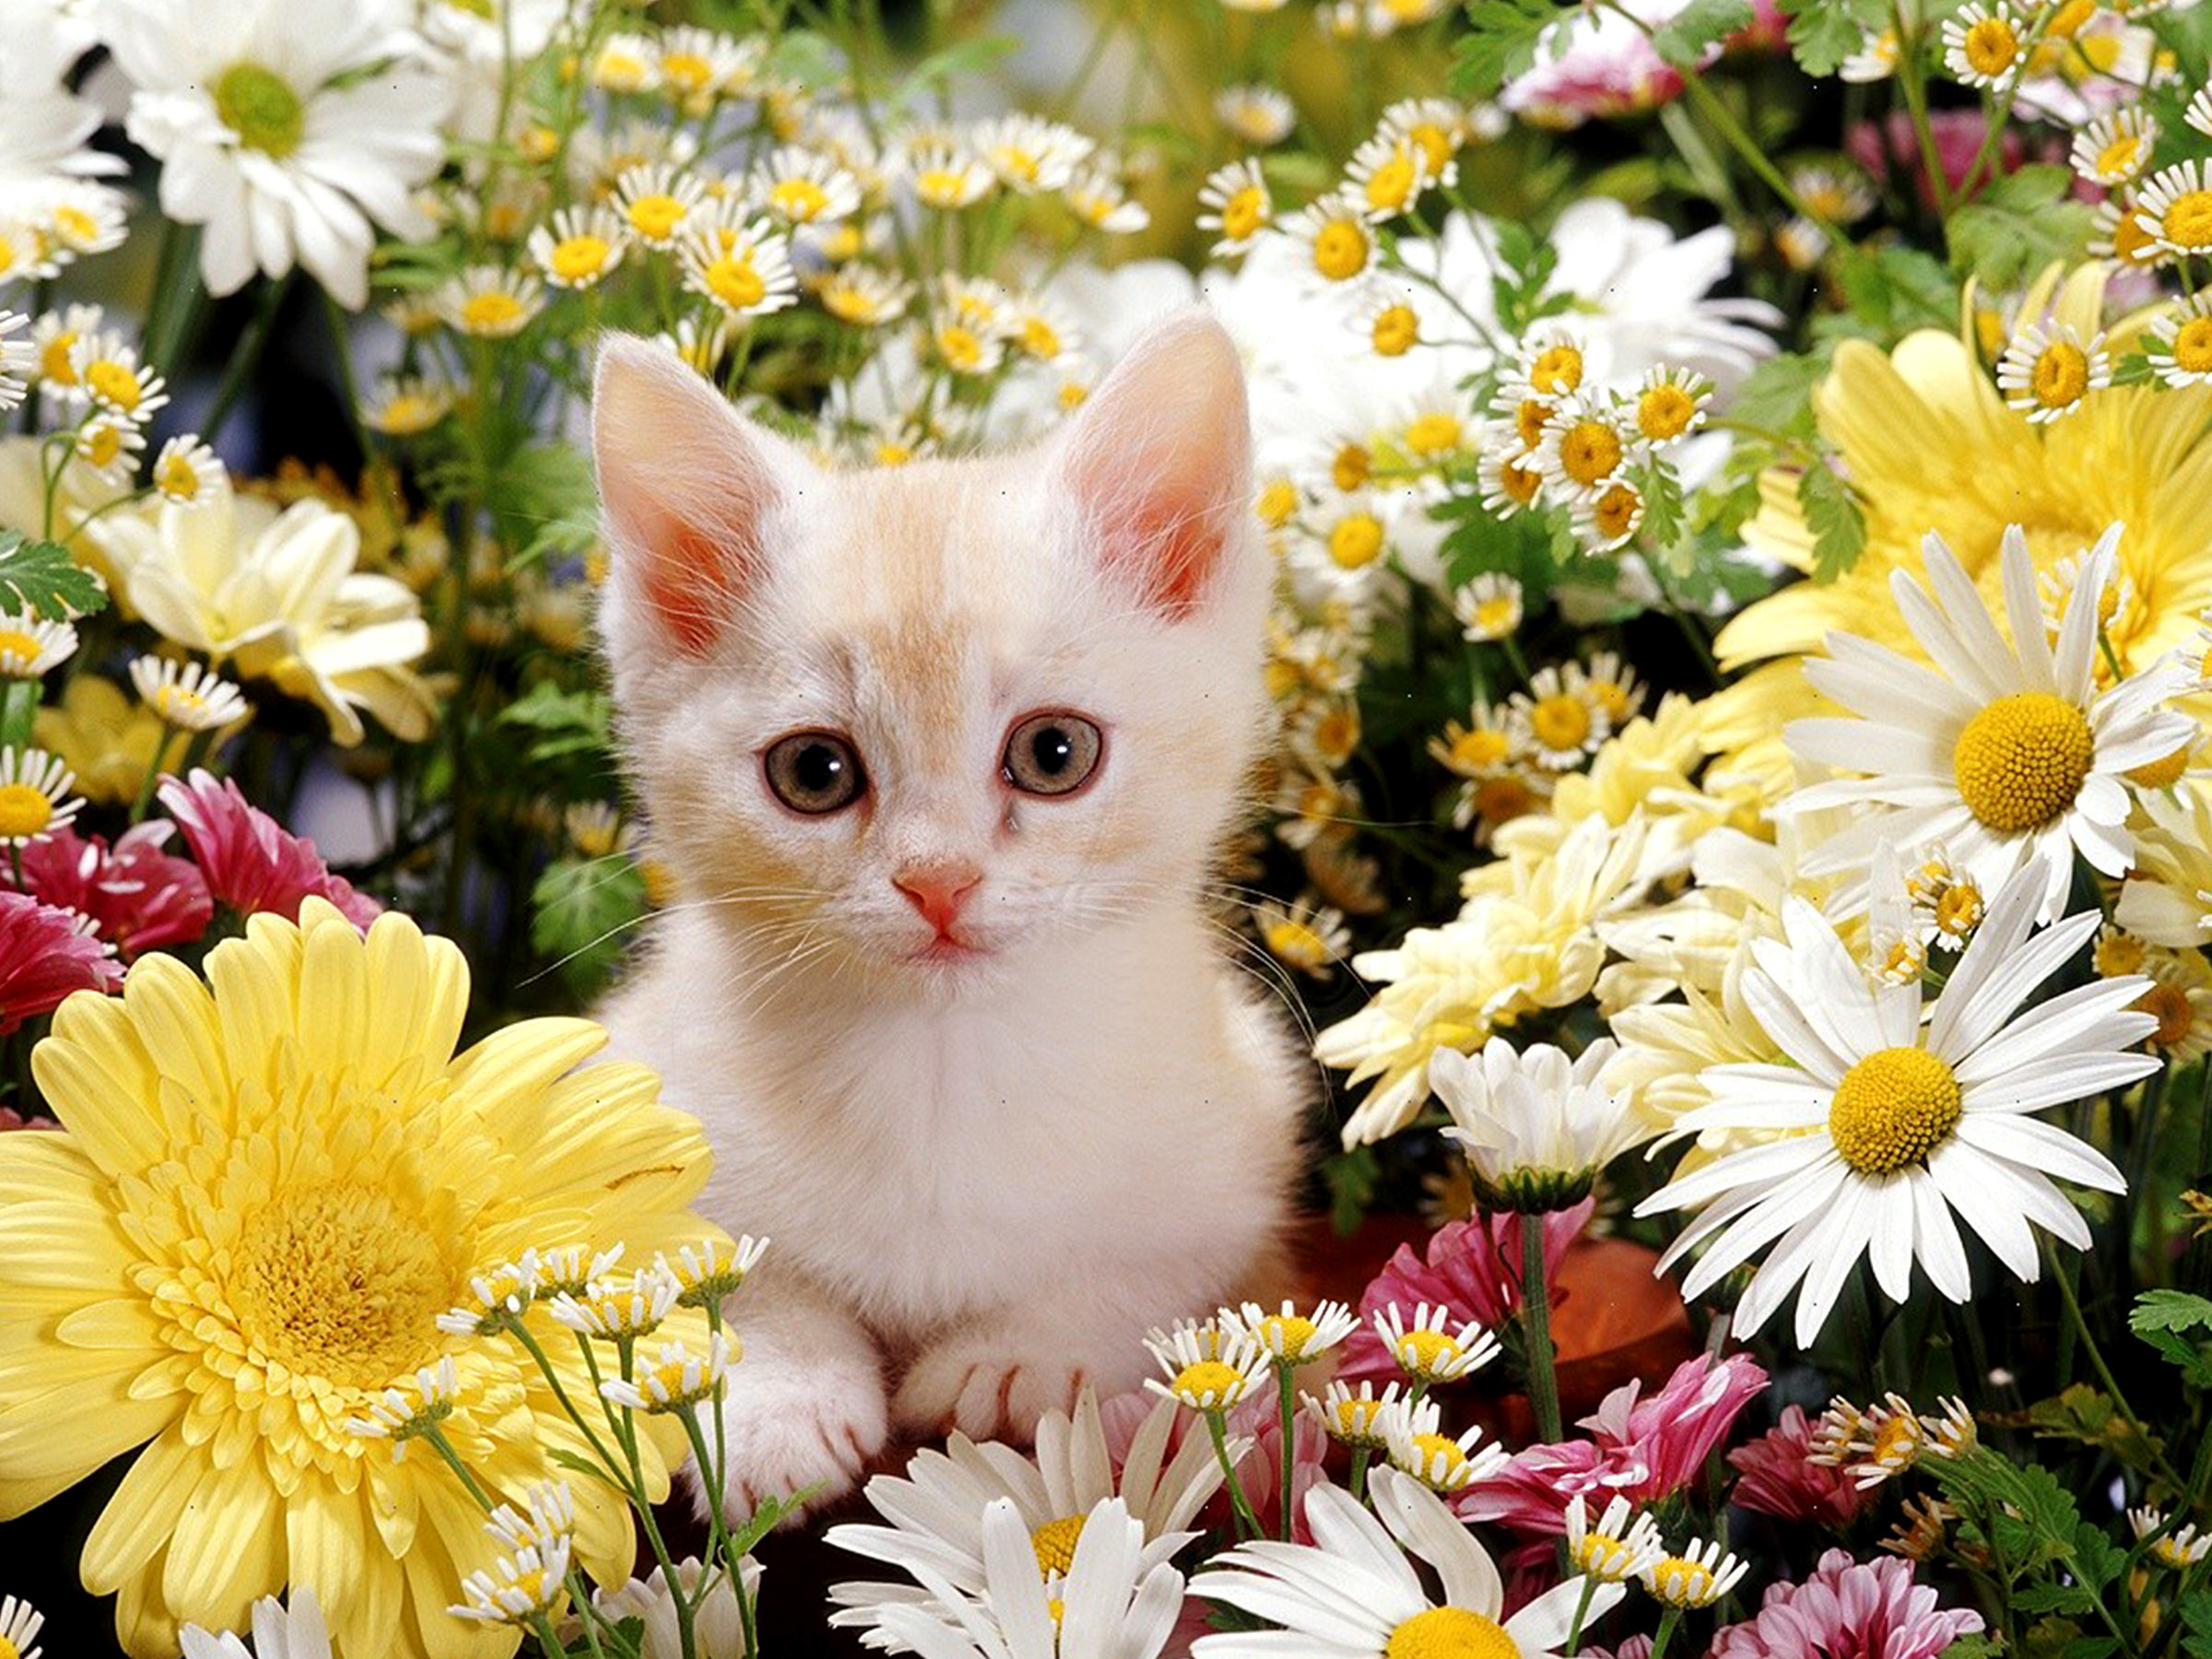 Kittens And Flowers Wallpaper 64 Images